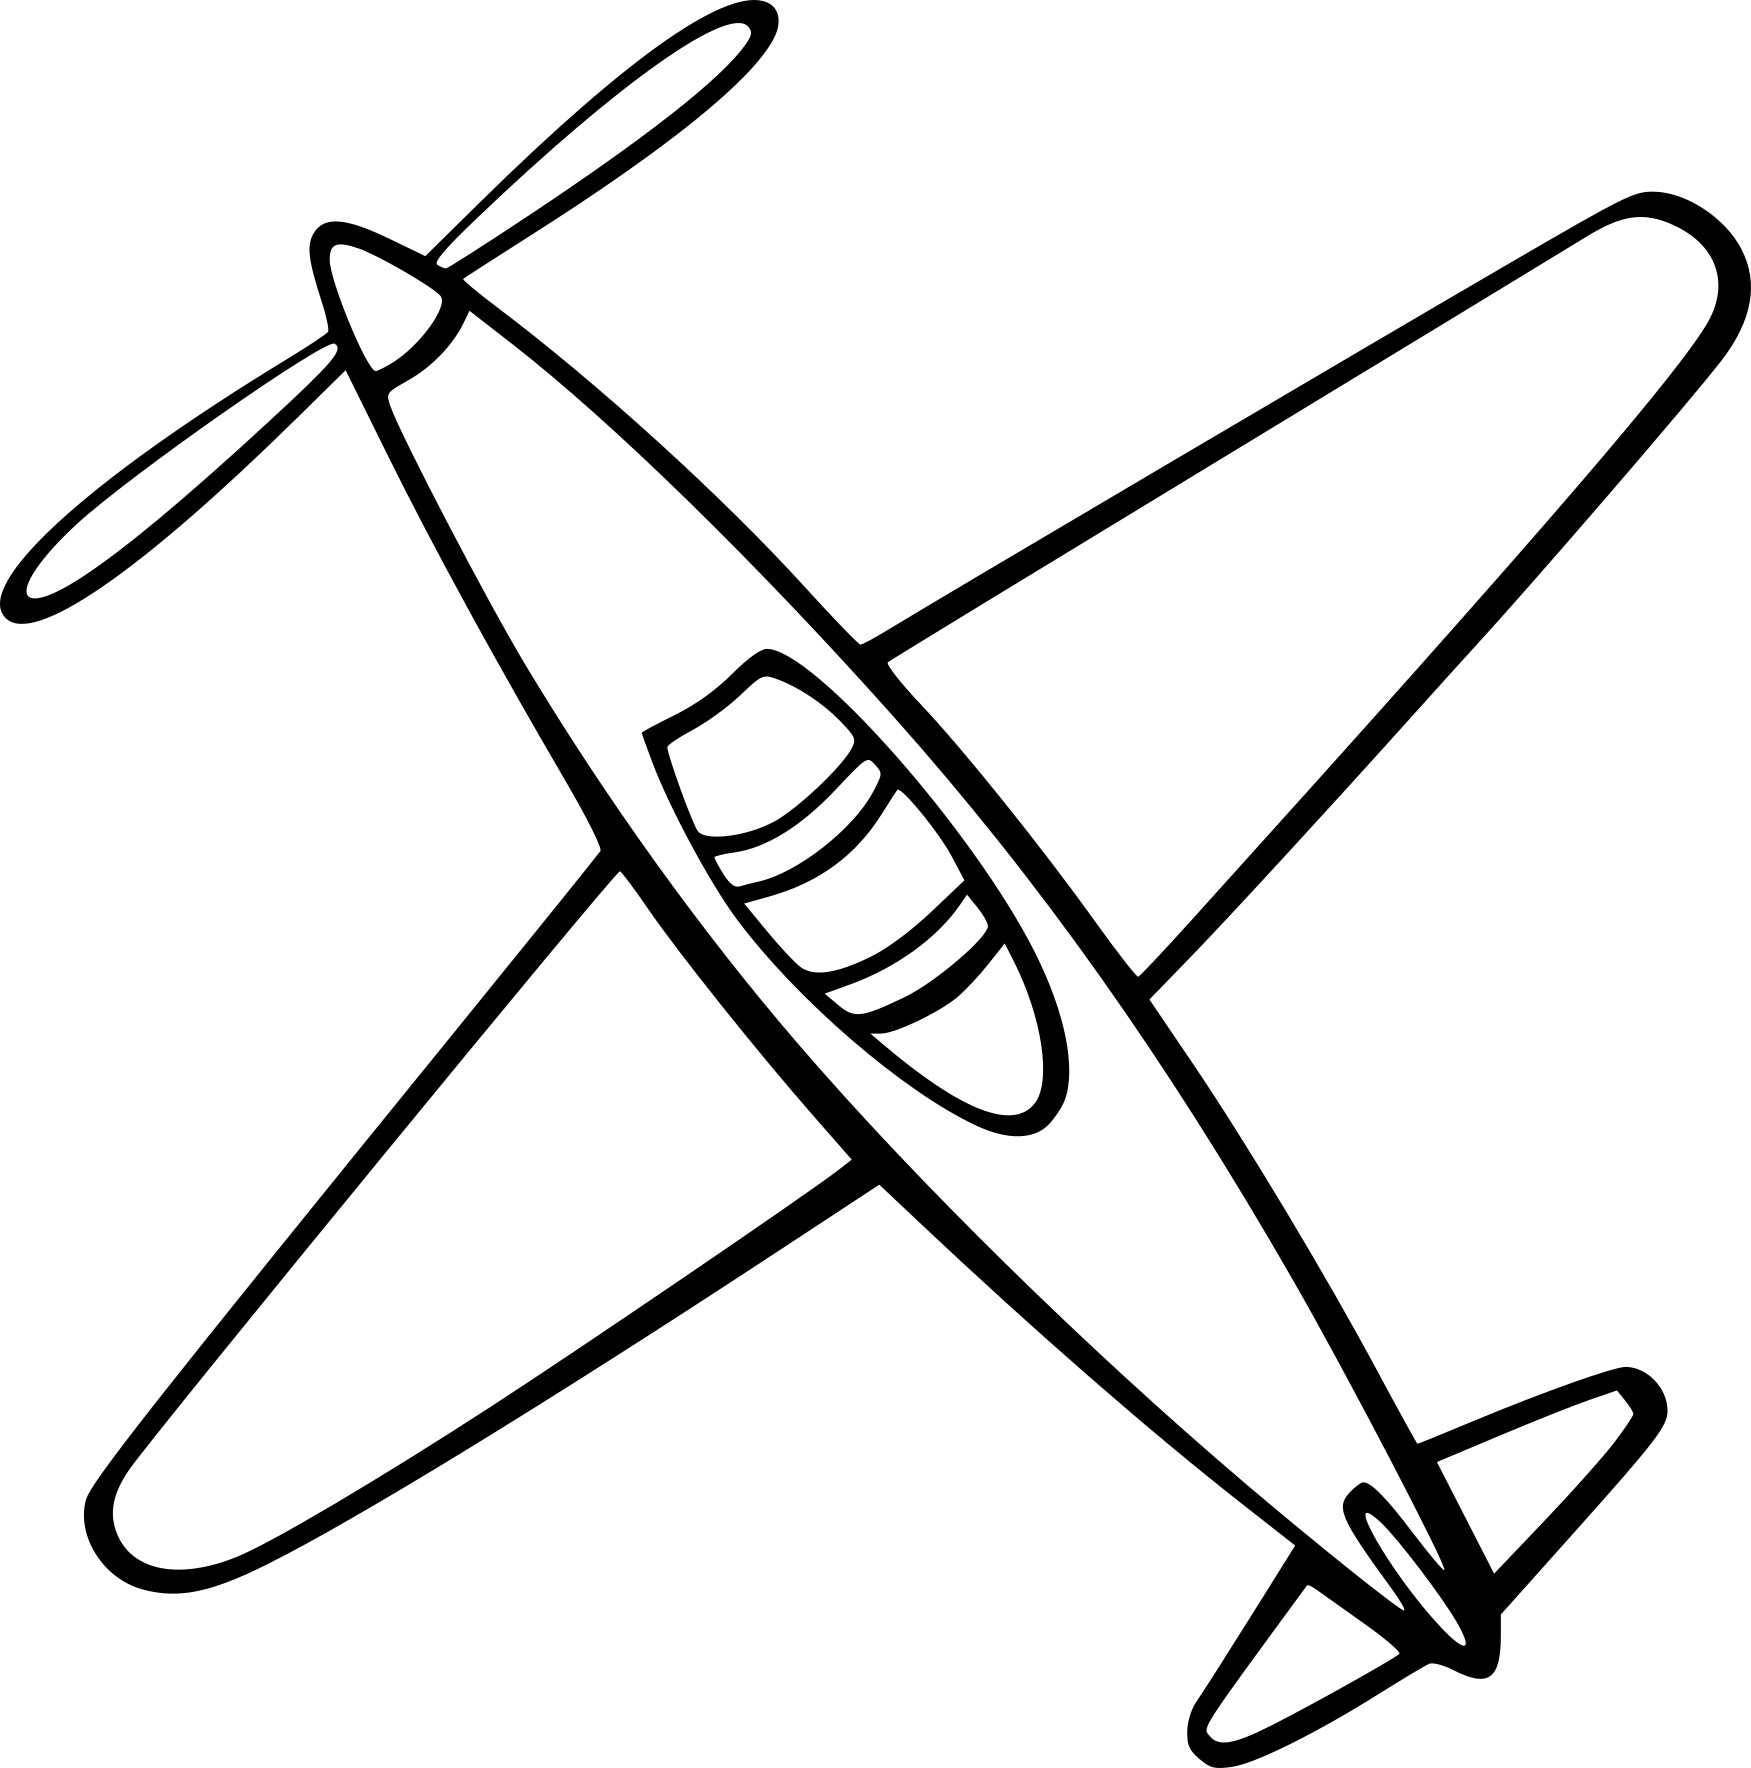 Coloriage avion facile imprimer sur coloriages info - Dessin d avion facile ...